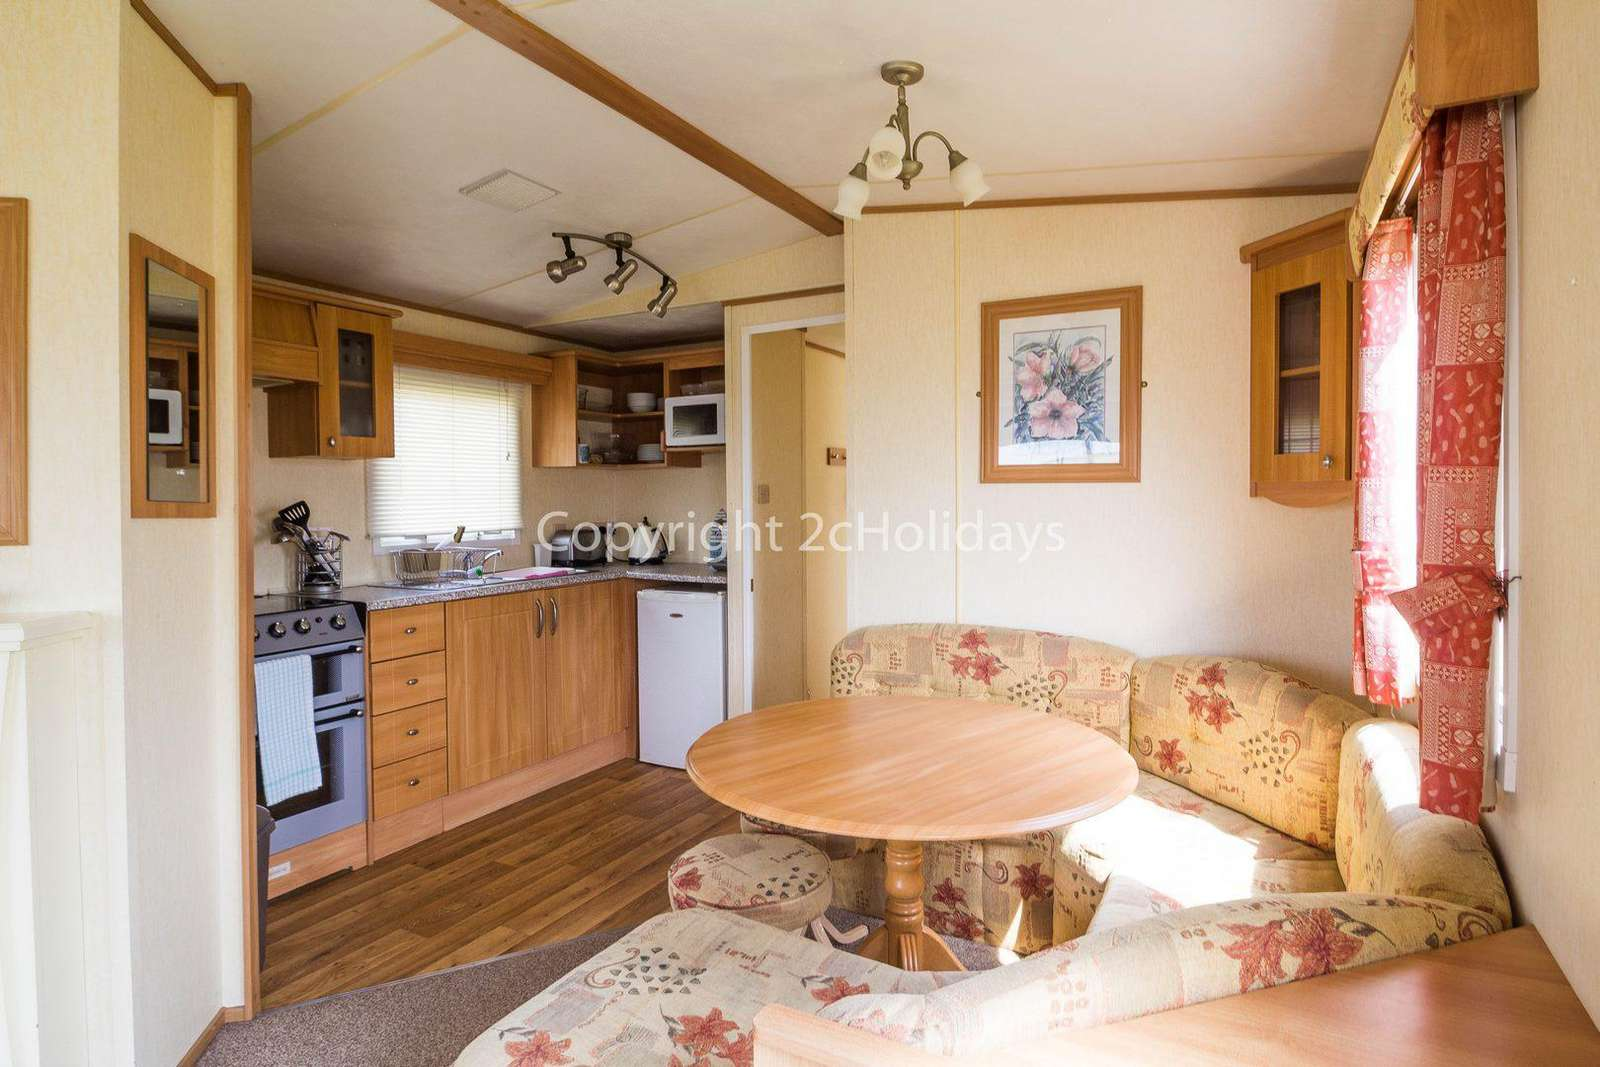 Come and stay in this private accommodation at Manor Park Holiday Park